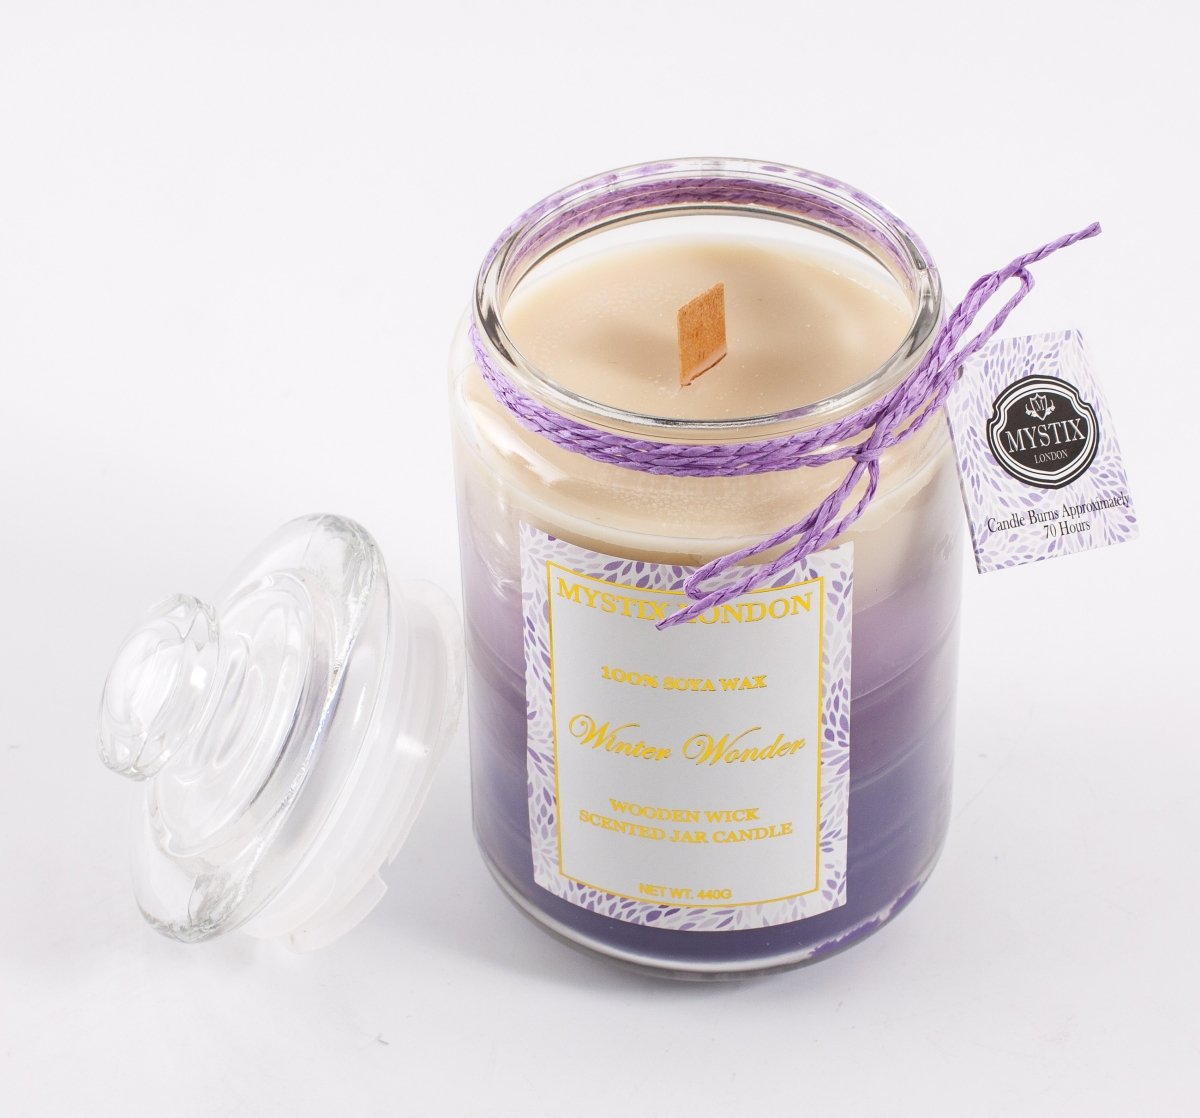 Mystix London Winter Wonder Wooden Wick Scented Jar Candle - Mystic Moments UK